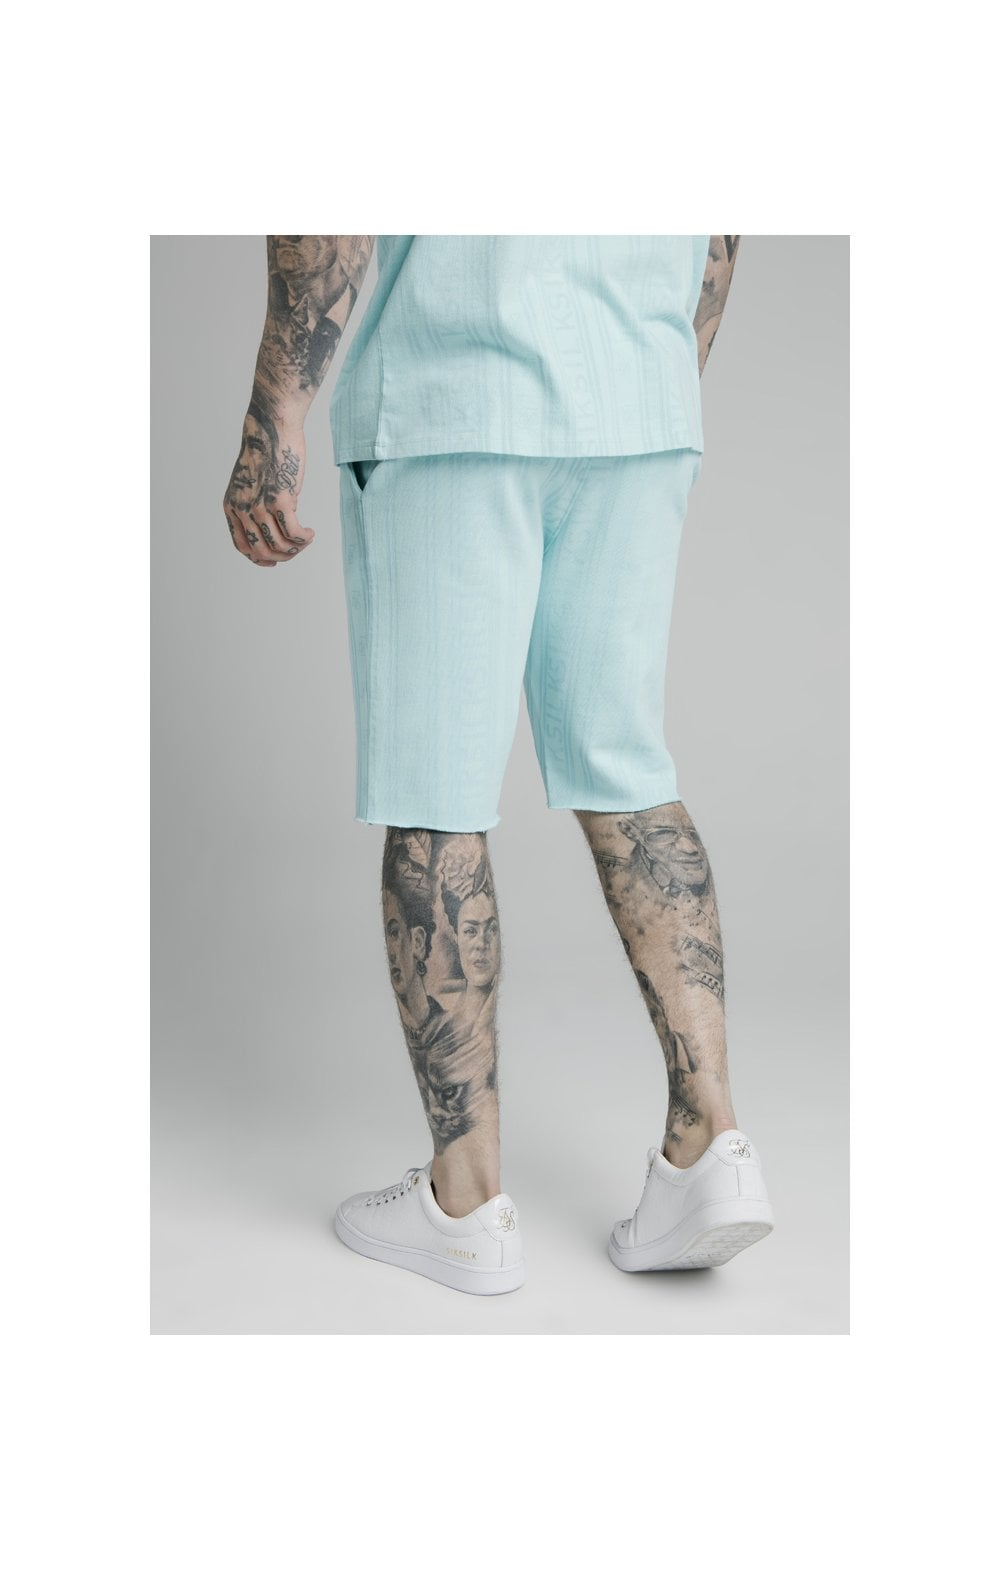 Load image into Gallery viewer, SikSilk Pastel Gym Shorts - Blue (1)